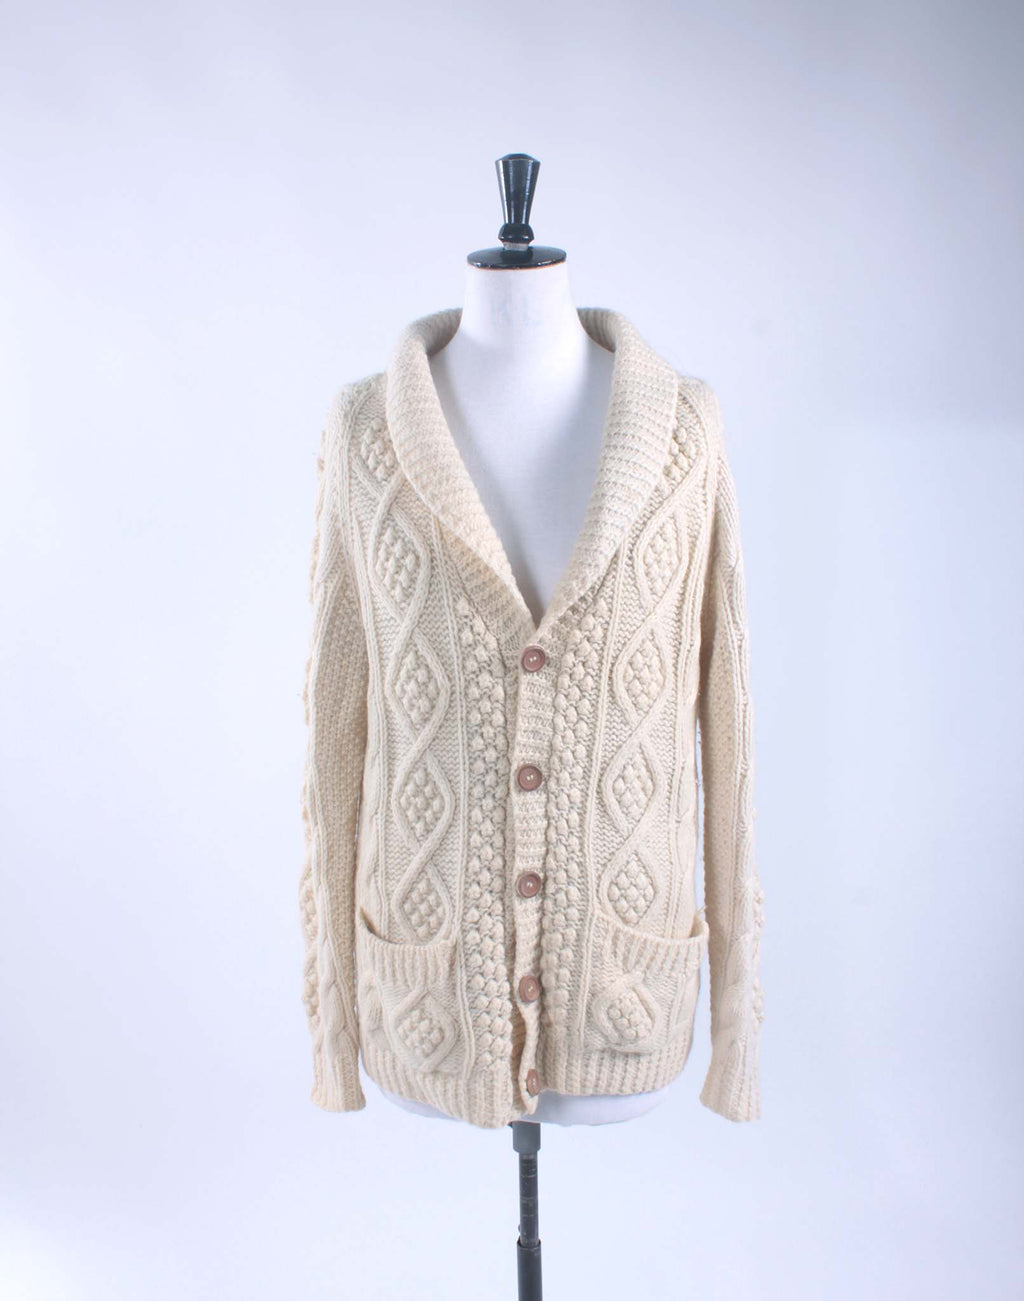 Vintage 70's Pure Wool Aran Cable Knit Cardigan - Size M